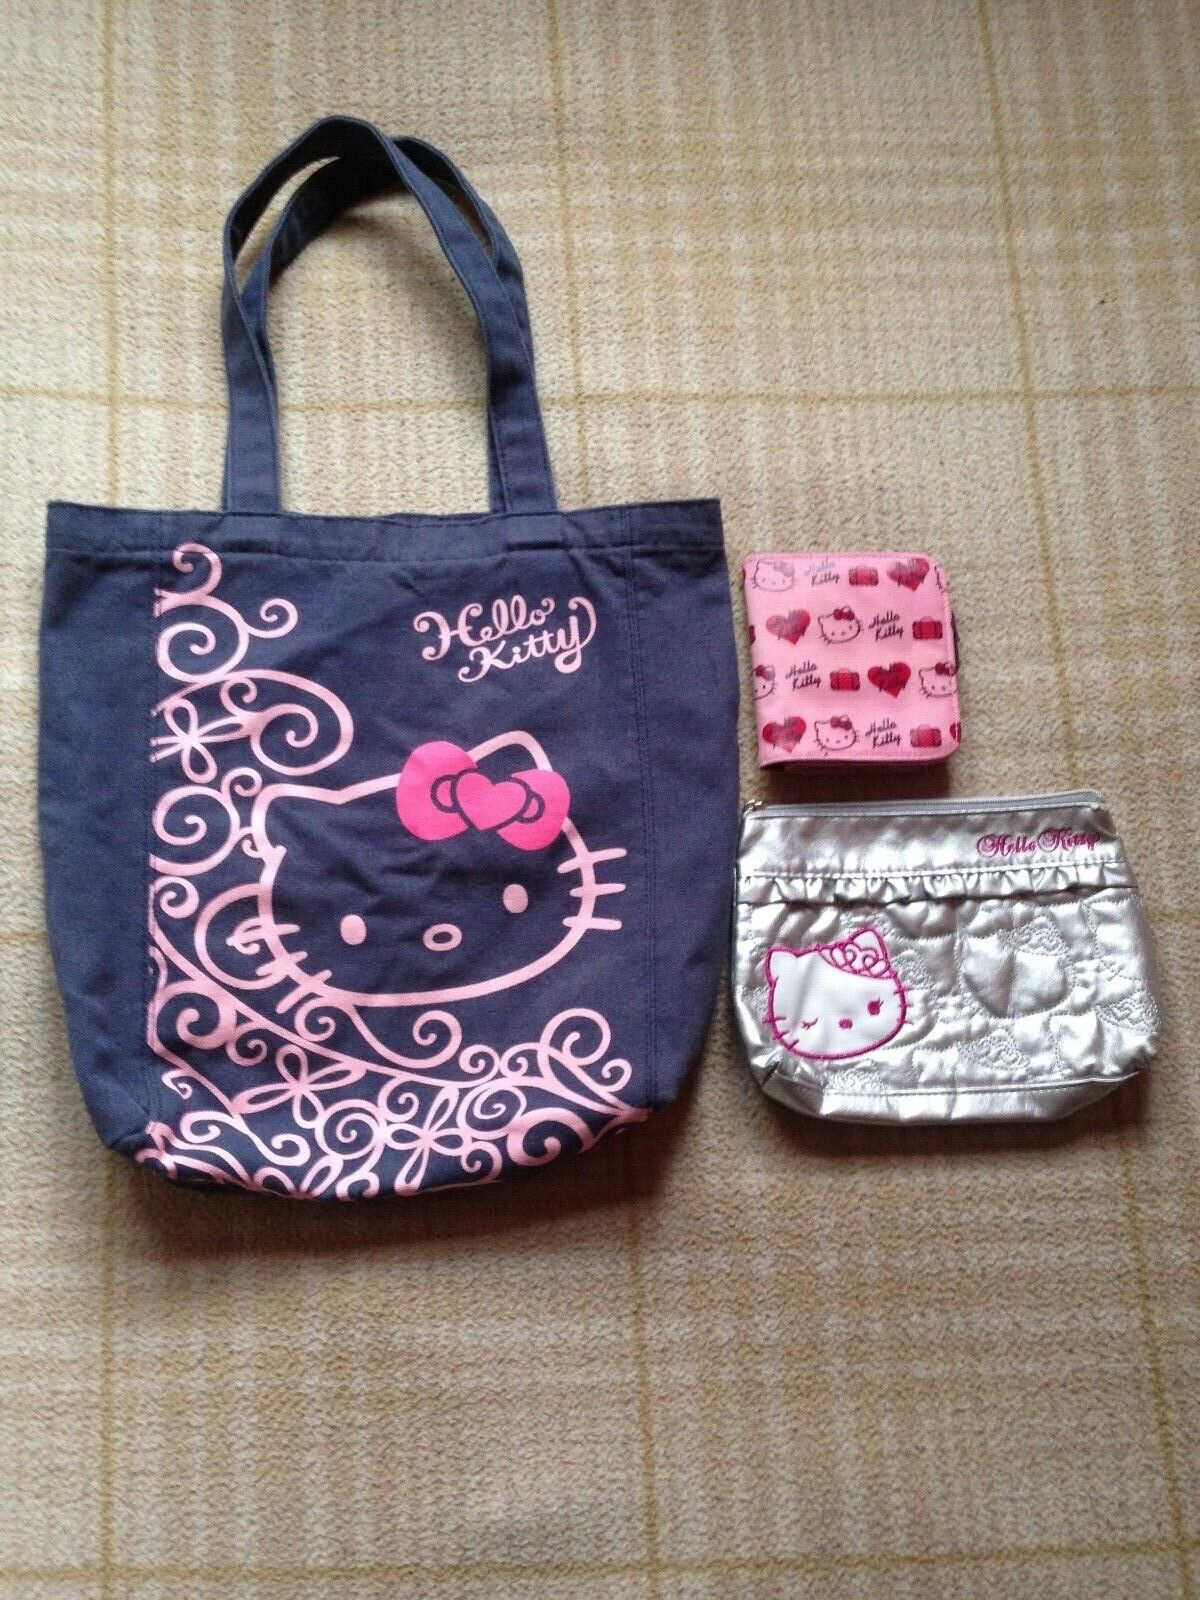 Hello Kitty Blue Canvas Tote Bag Pink Wallet Faux Leather Make Up Bag Bundle